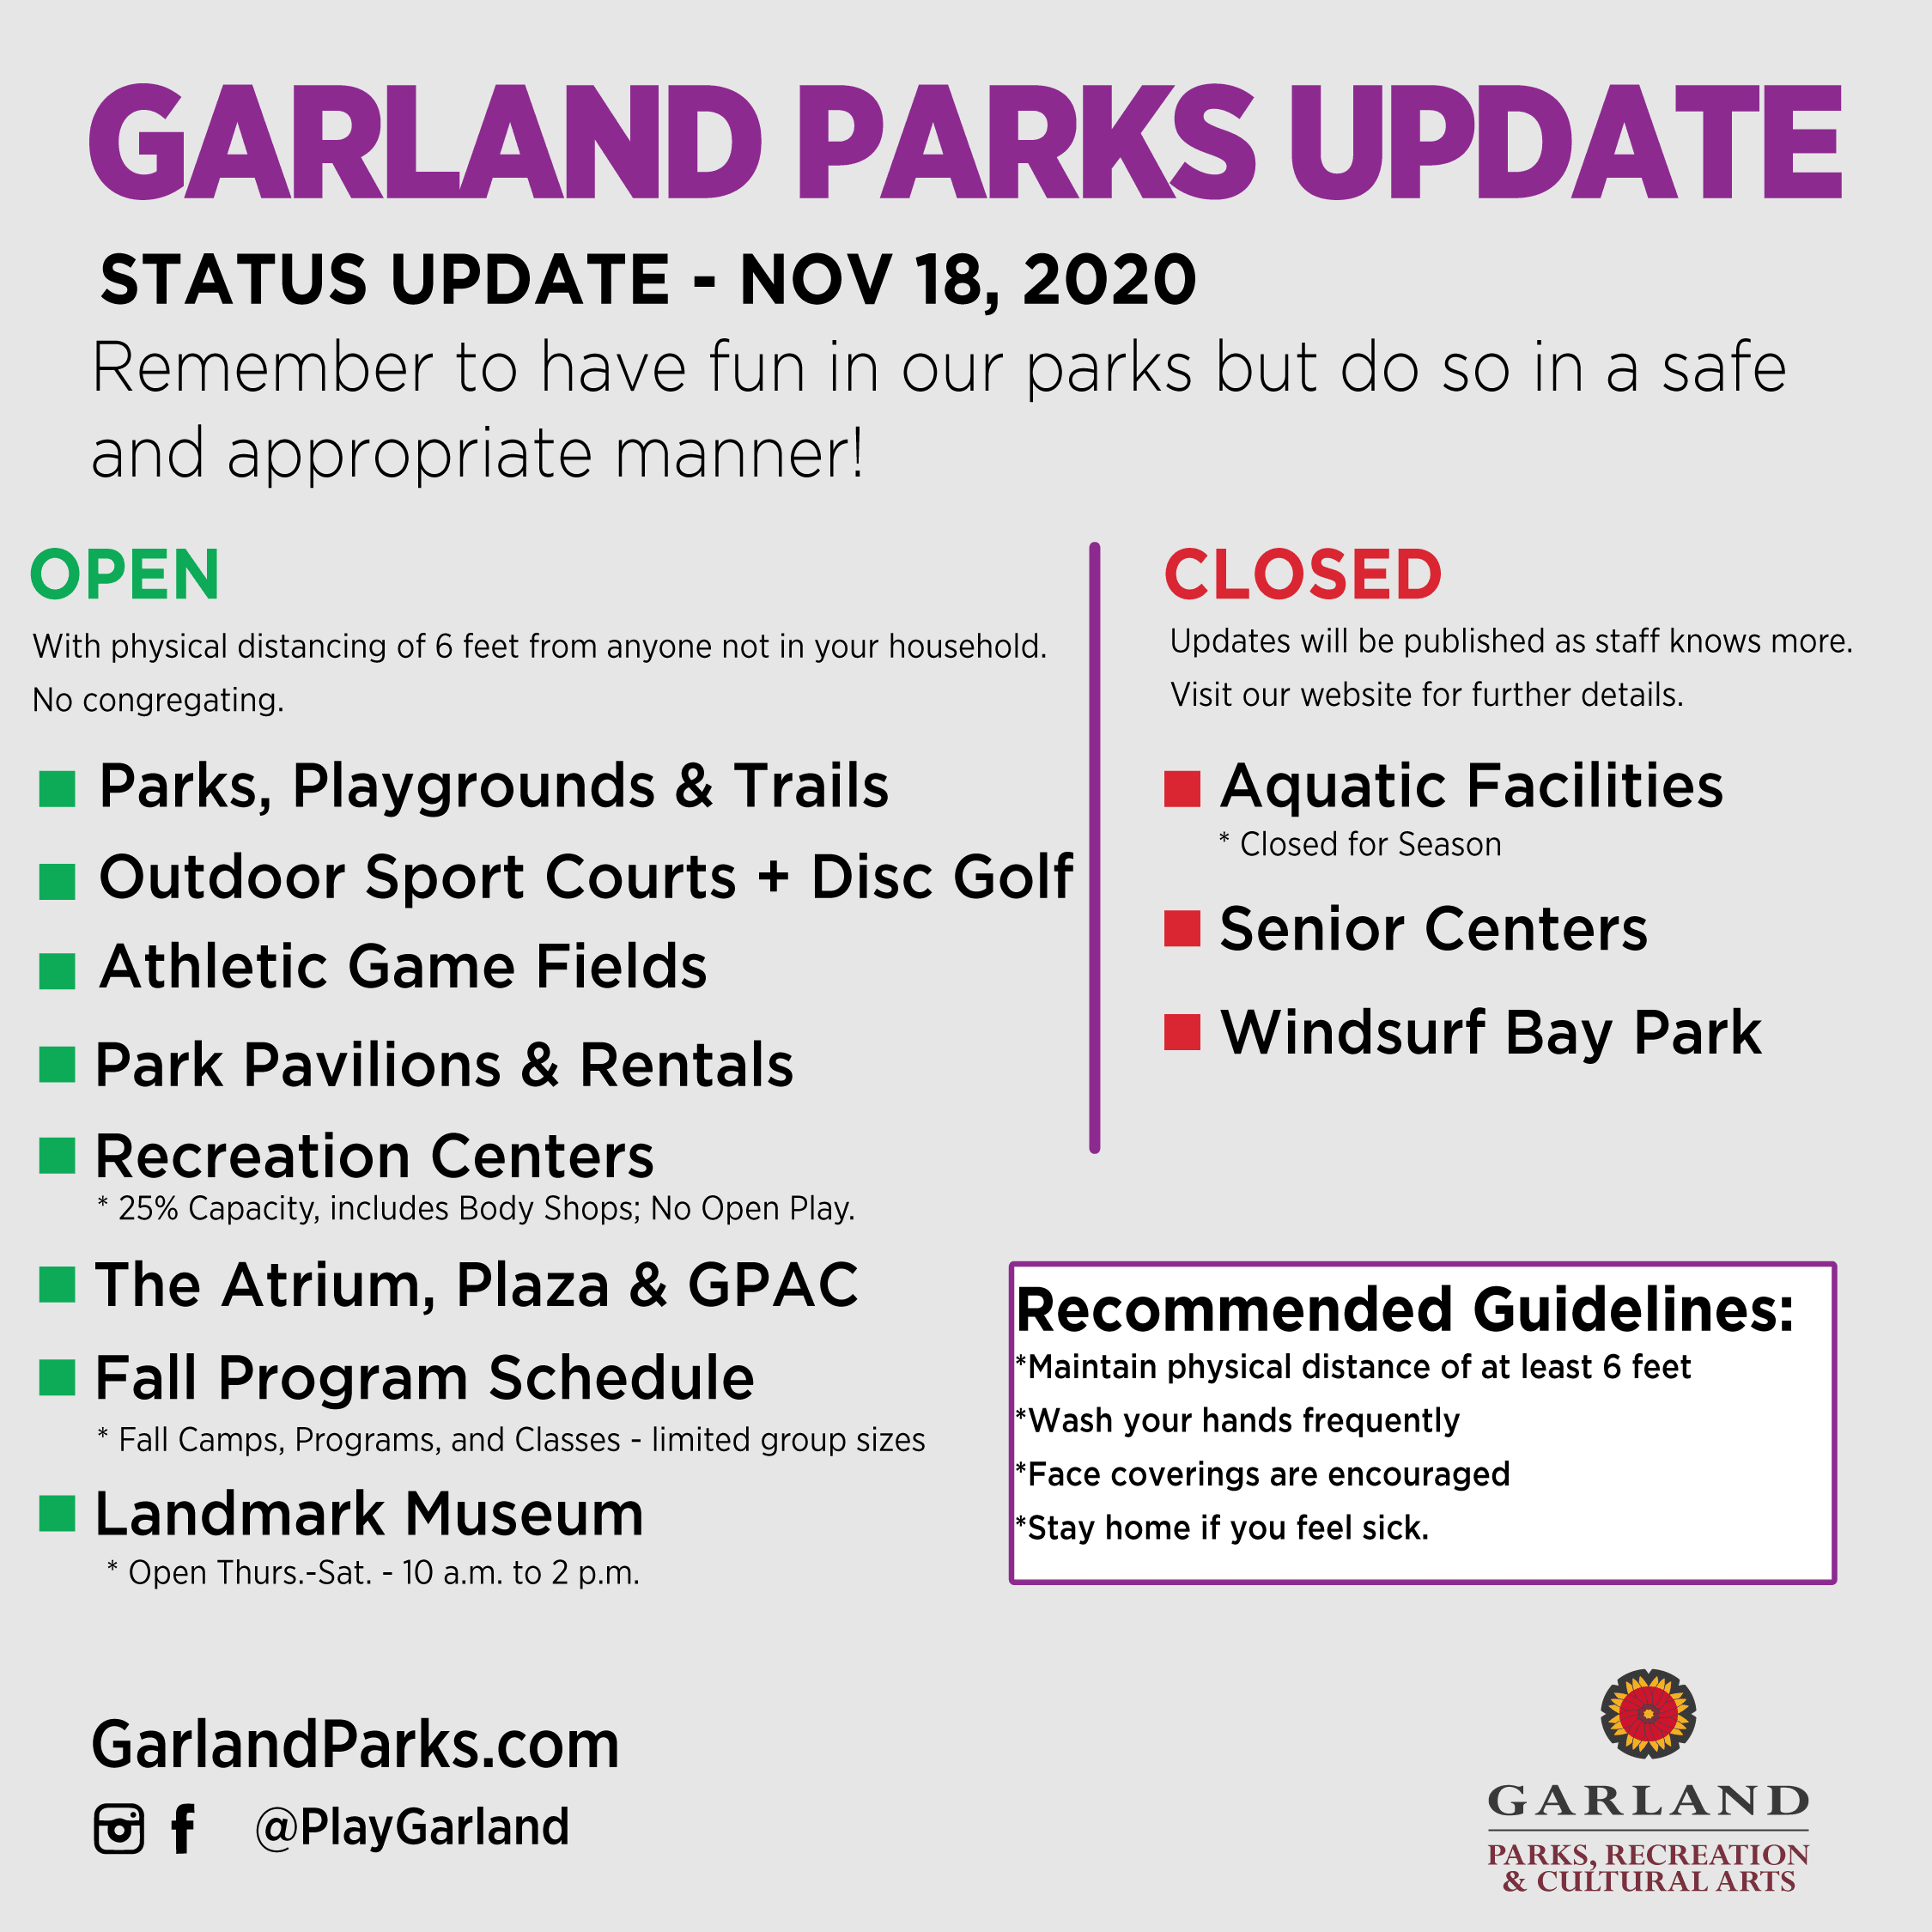 Garland Parks, Recreation, & Cultural Arts System Update as of Nov 18, 2020